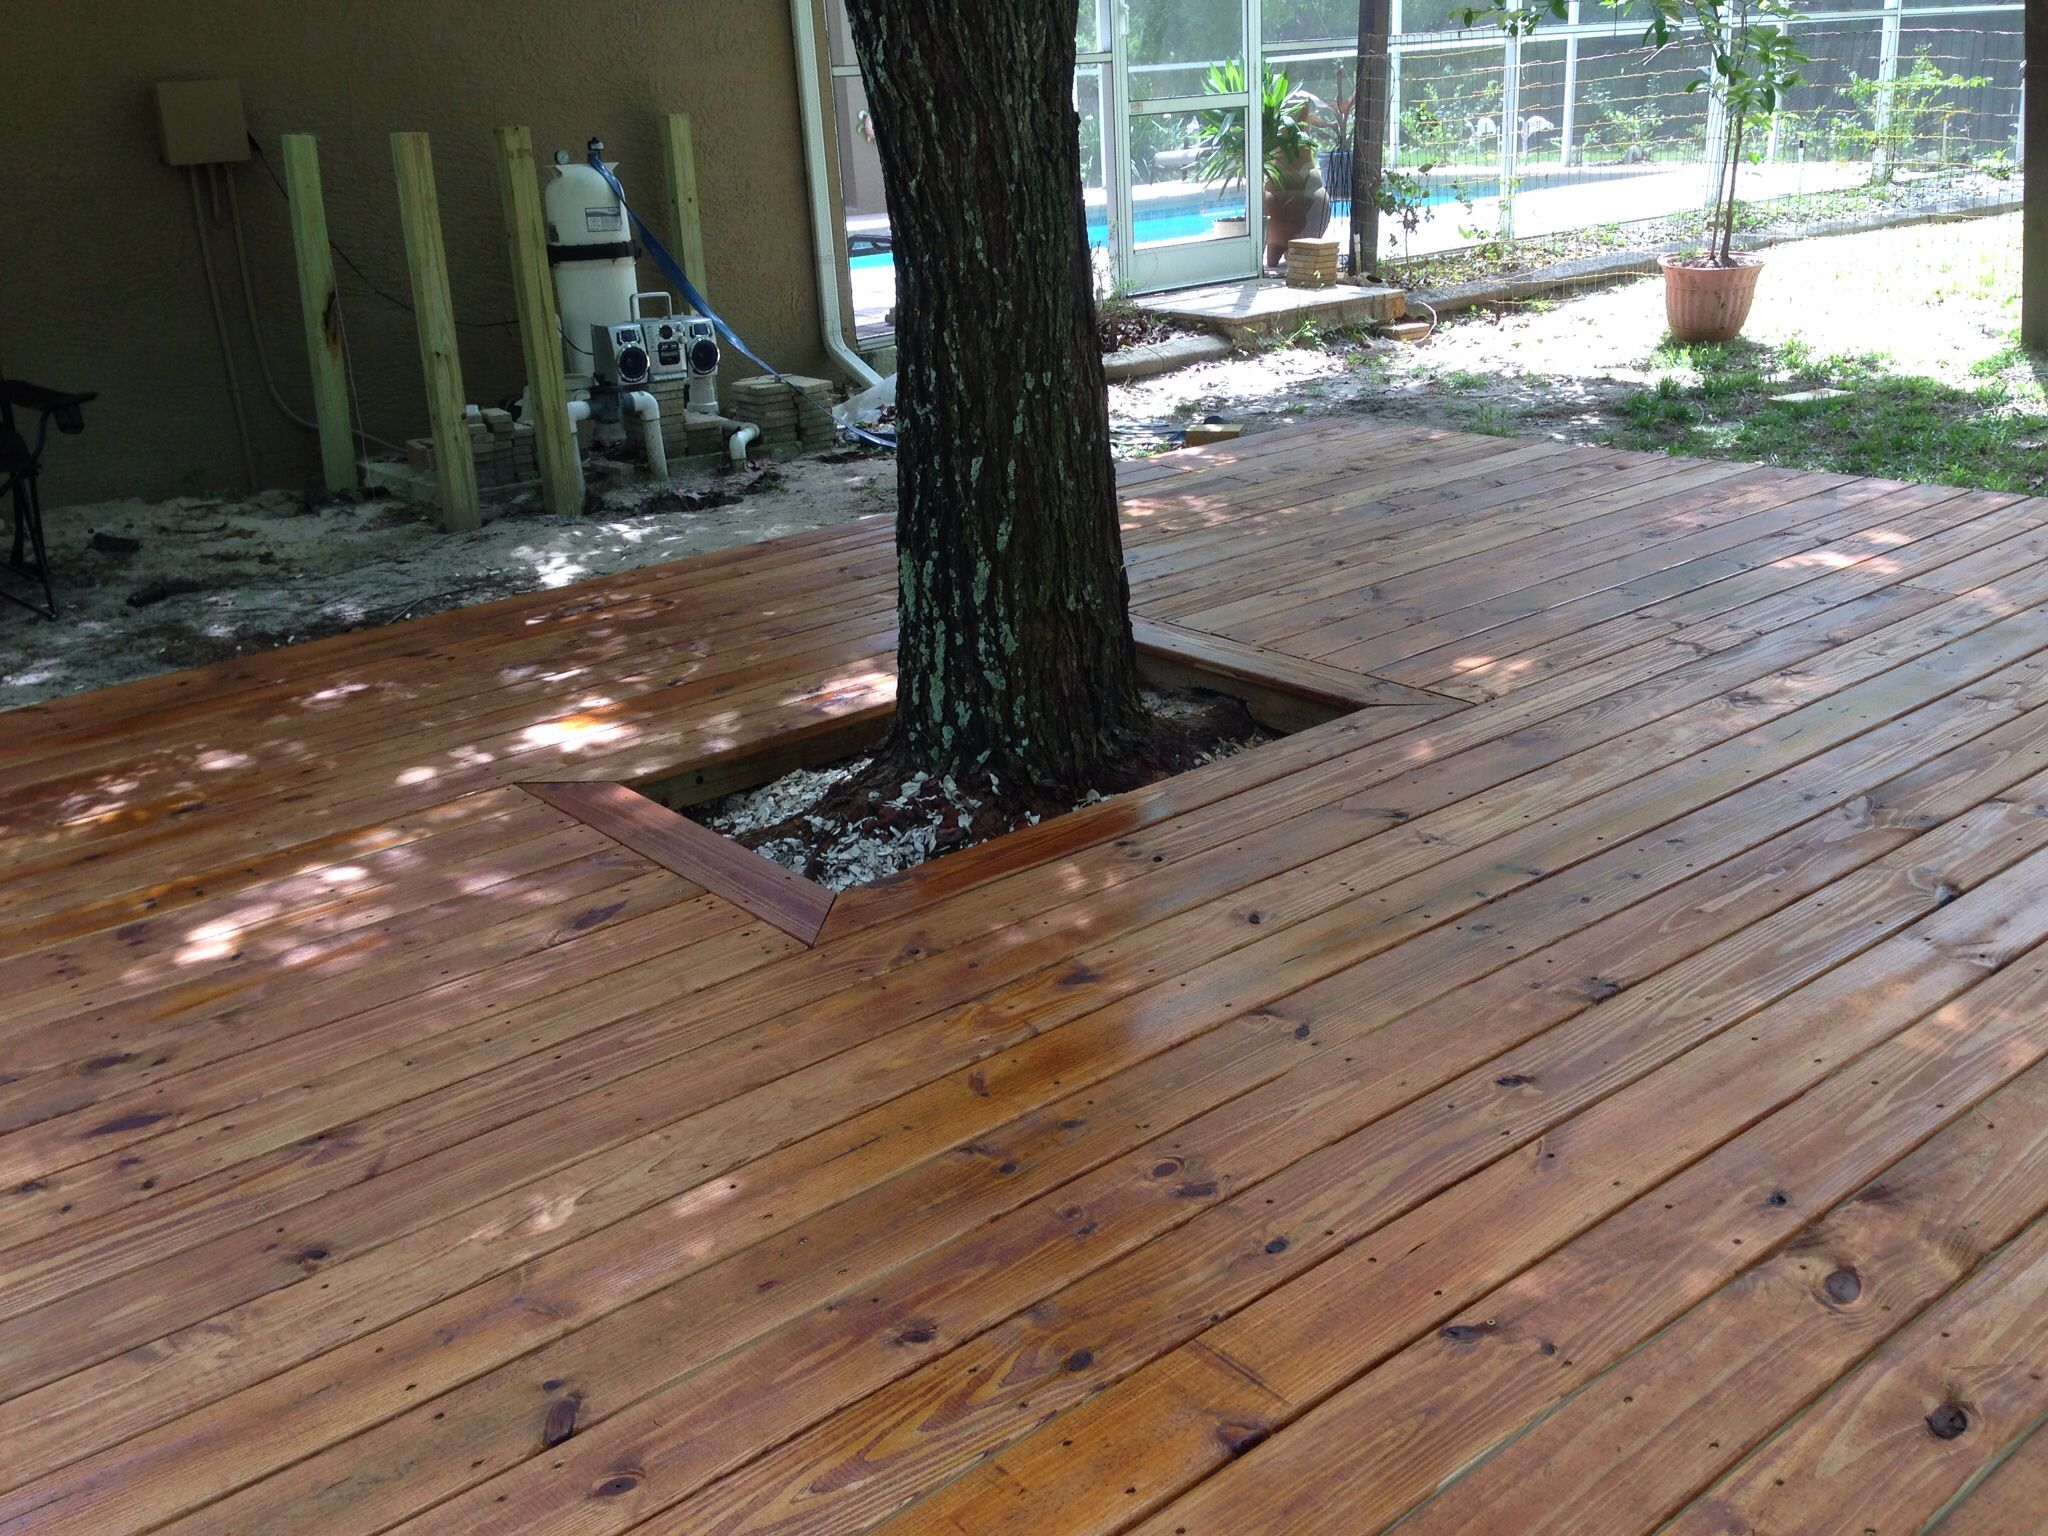 Our New Freshly Stained Deck We Used Olympic Elite Woodland Oil In The Mountain Cedar Color Cedar Deck Stain Deck Stain Colors House Deck